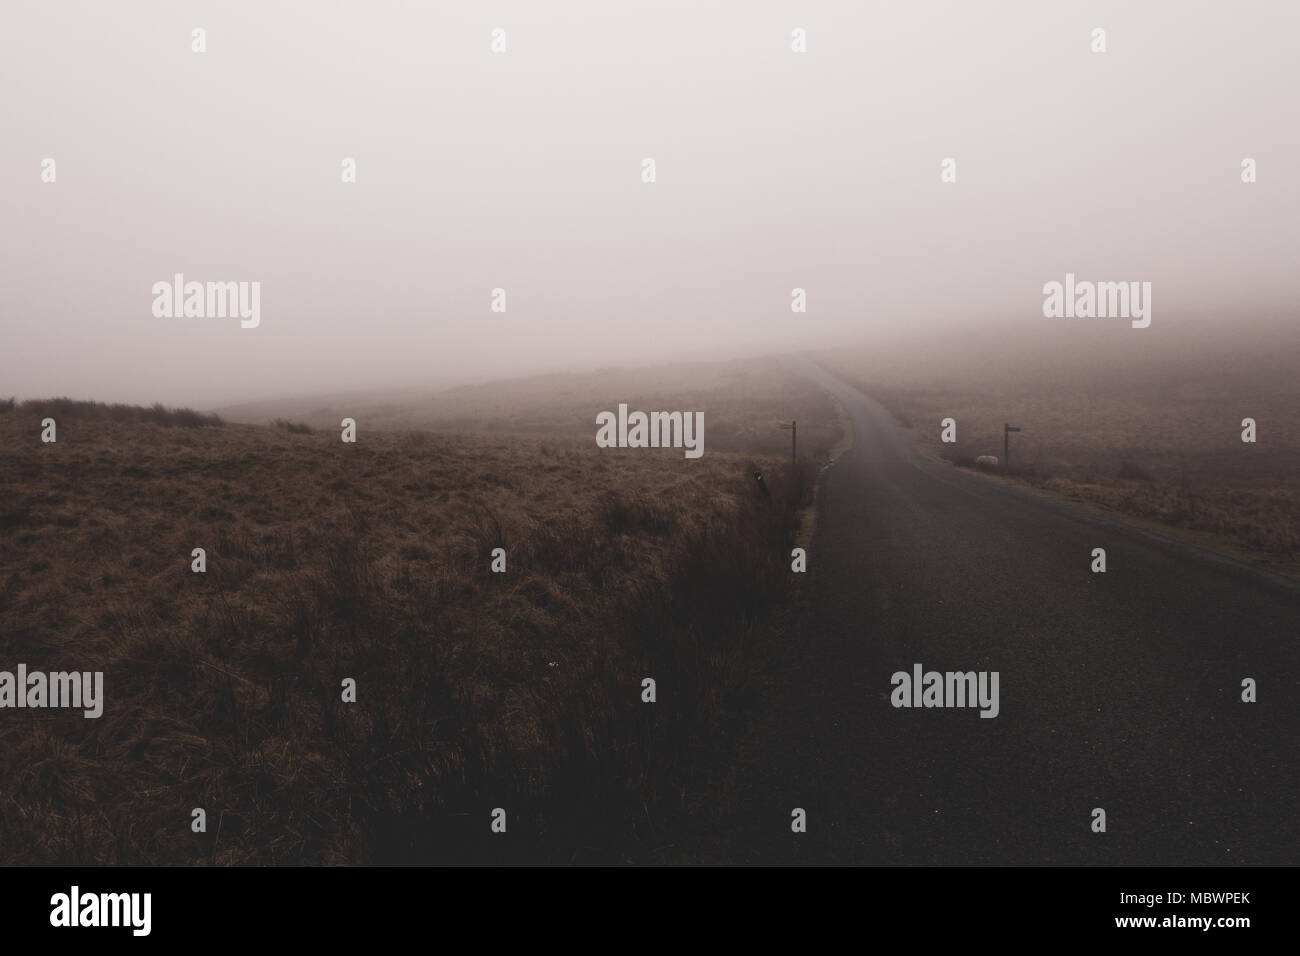 Fog obscures view along a countryside road with two signposts pointing in opposite directions, Yorkshire, UK - Stock Image